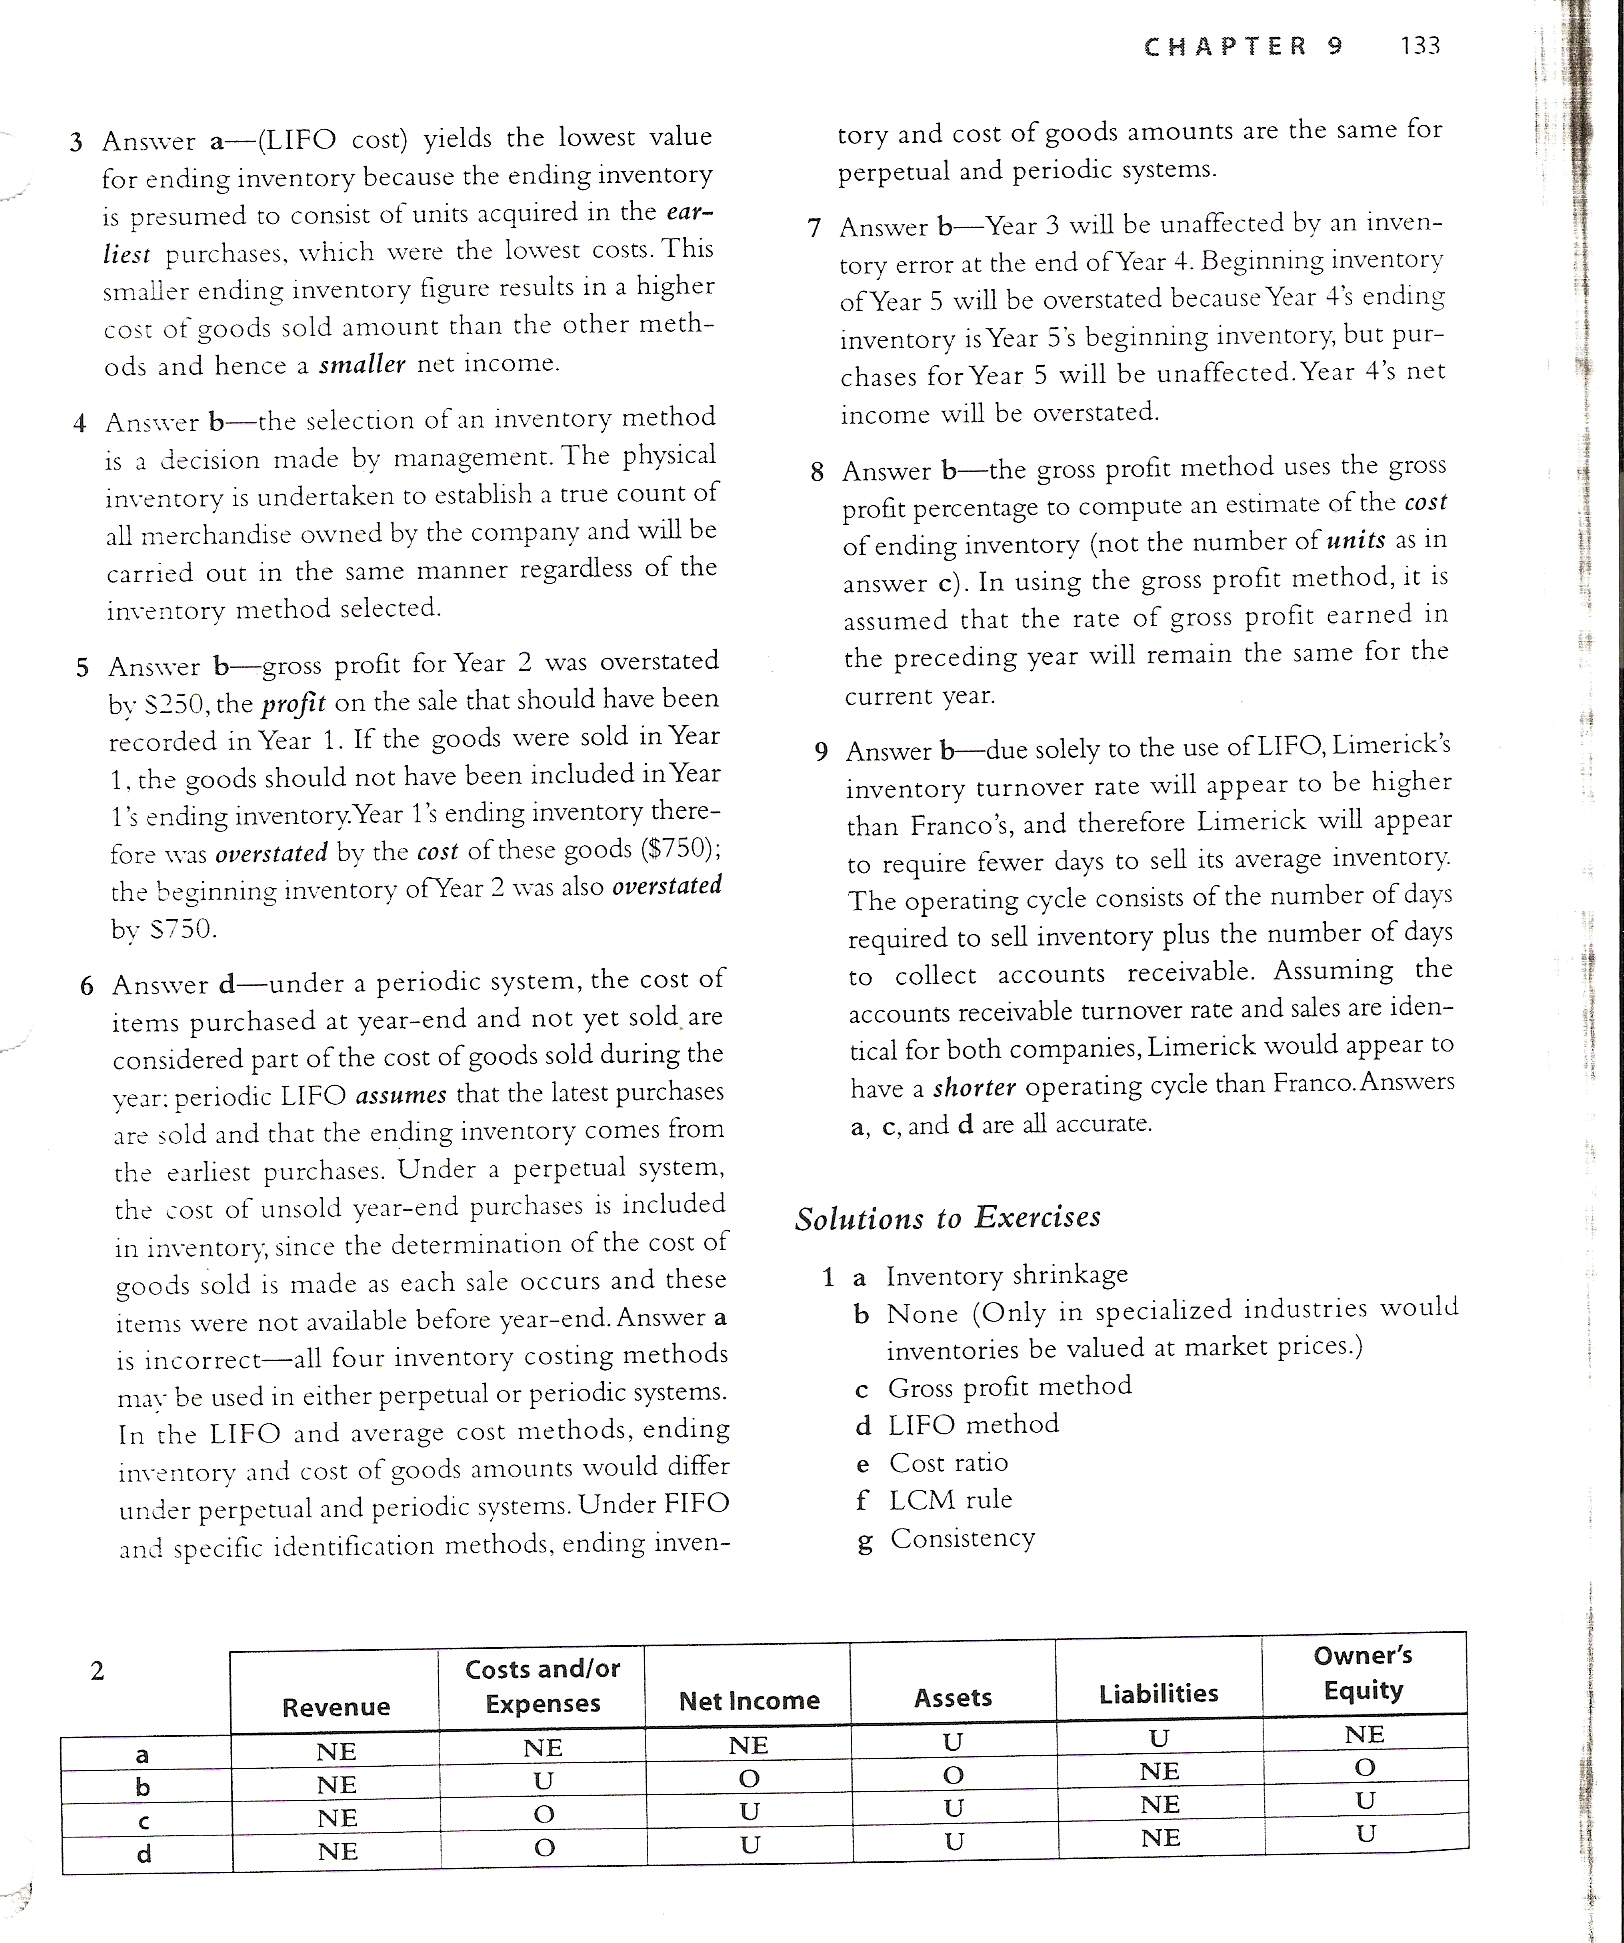 Accounting 1 Chapter 9 Worksheet Answers